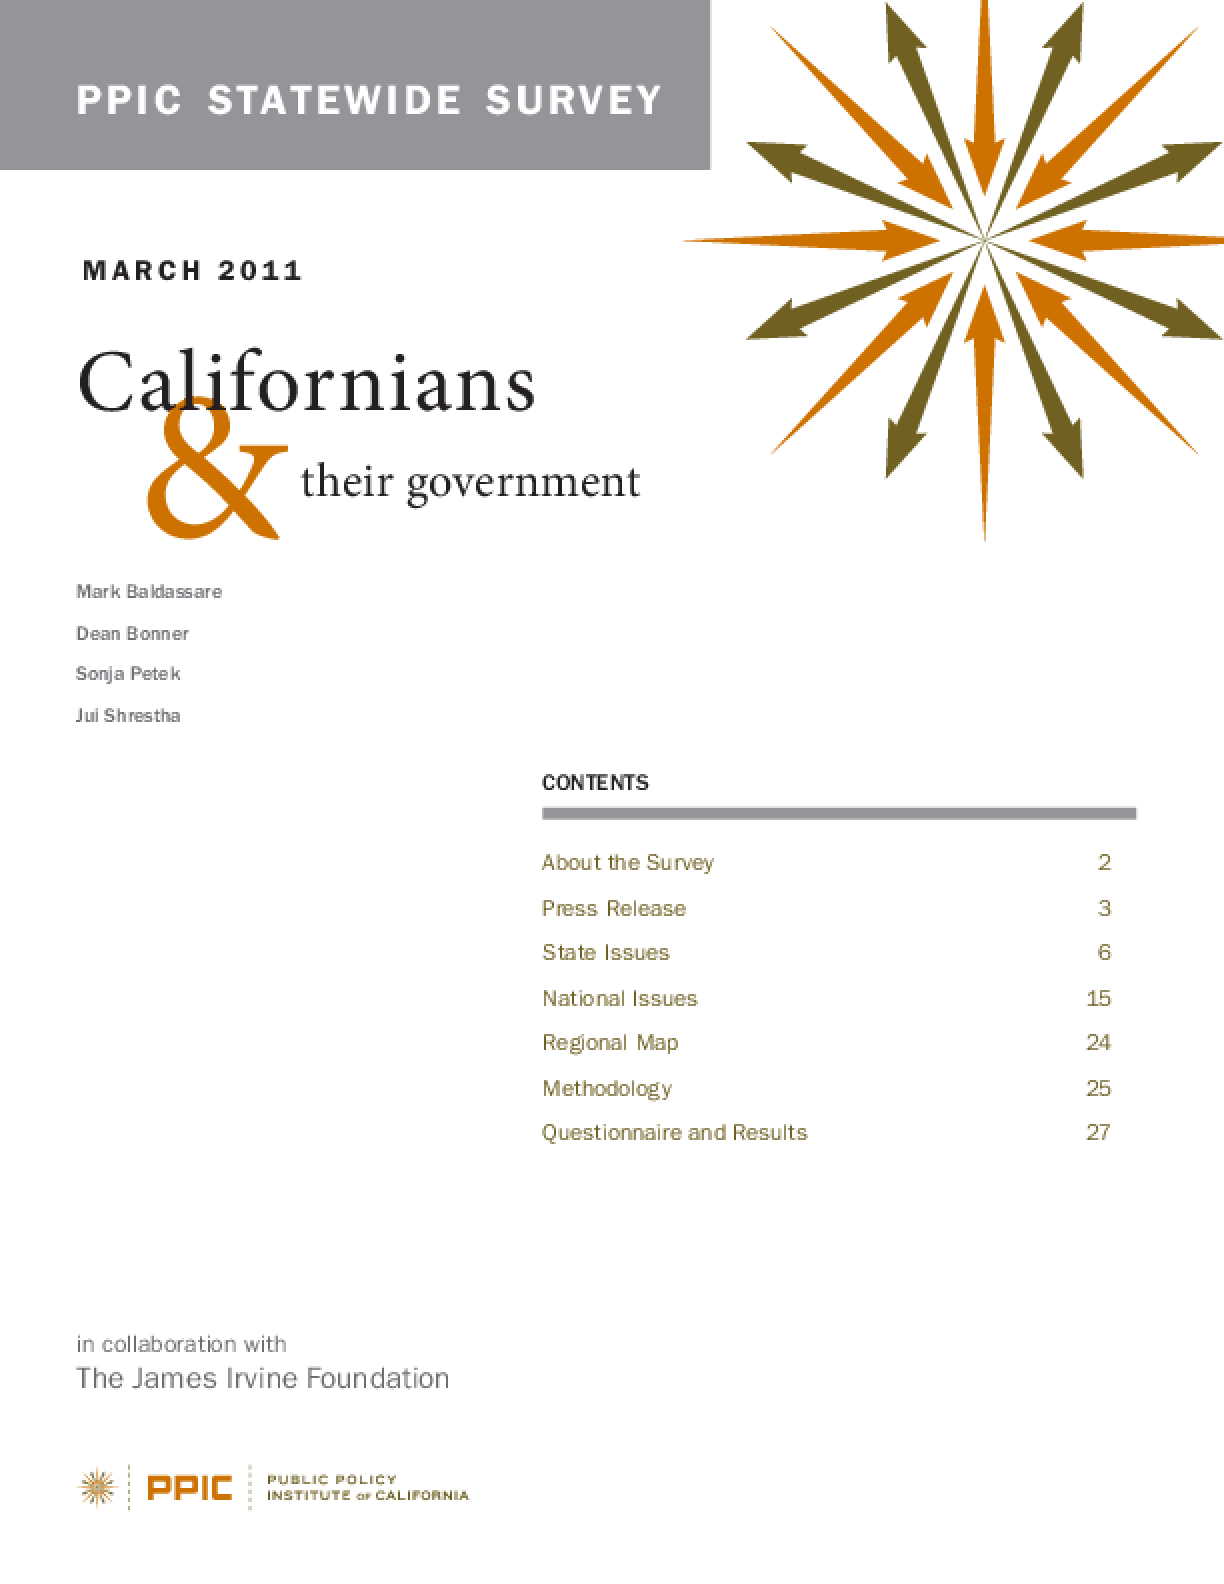 PPIC Statewide Survey: Californians and Their Government March 2011